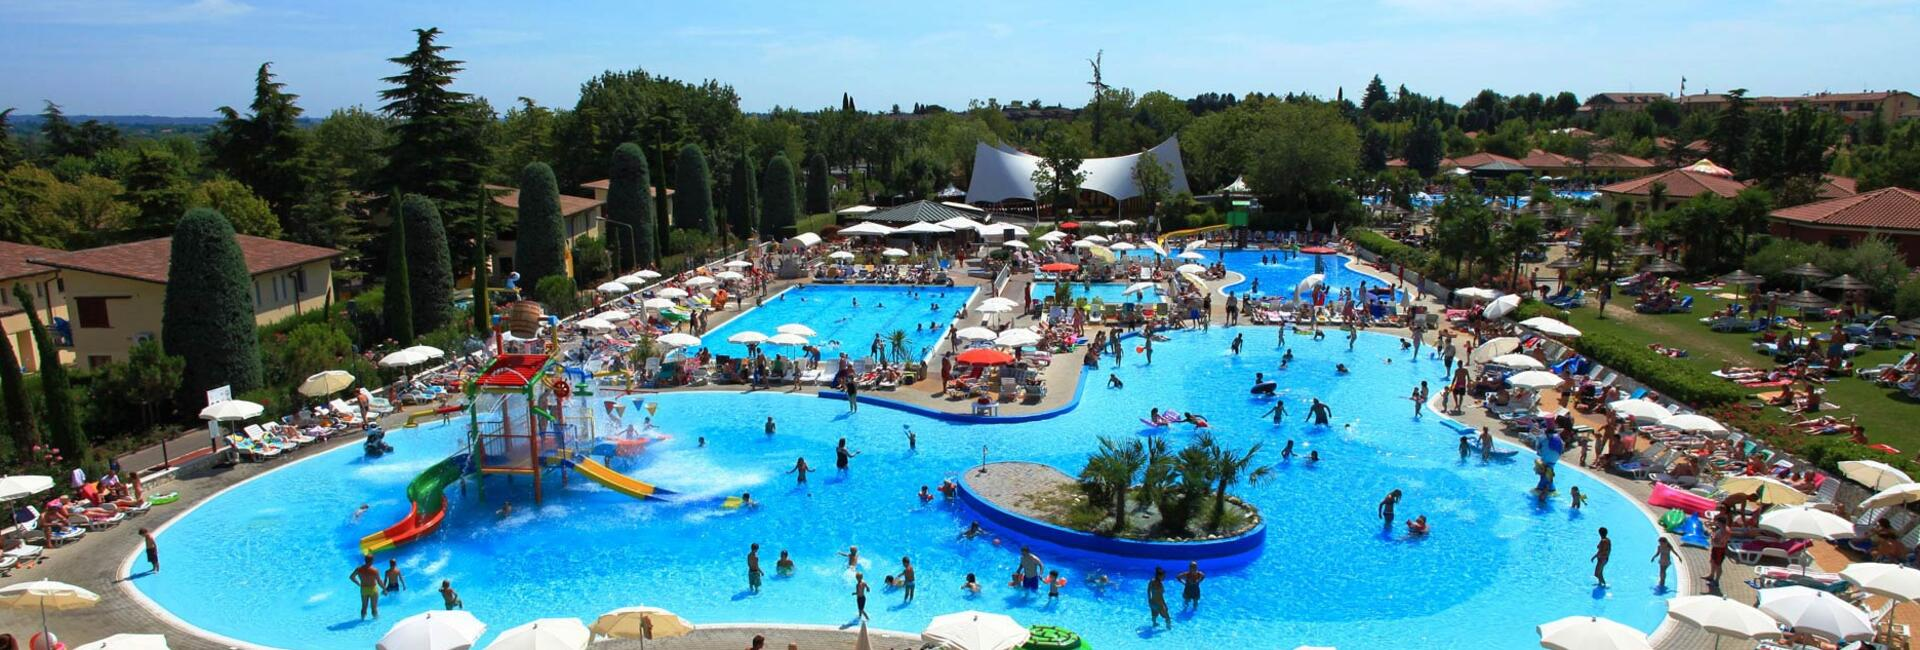 camping-bellaitalia it 1-it-313091-offerta-7-5 019